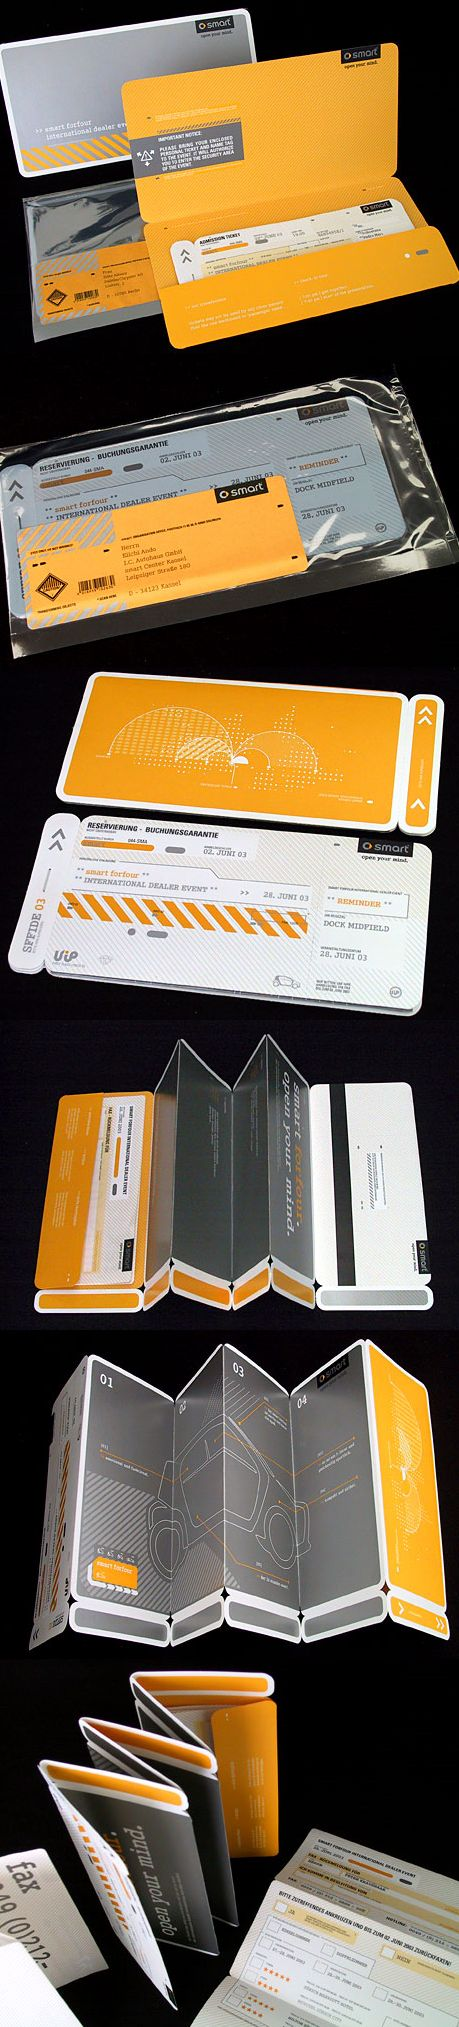 http://website-submissions.digimkts.com Free to list  Airplane Tickets. Very innovative packaging, clean overall look. Great use of colors and plastics.